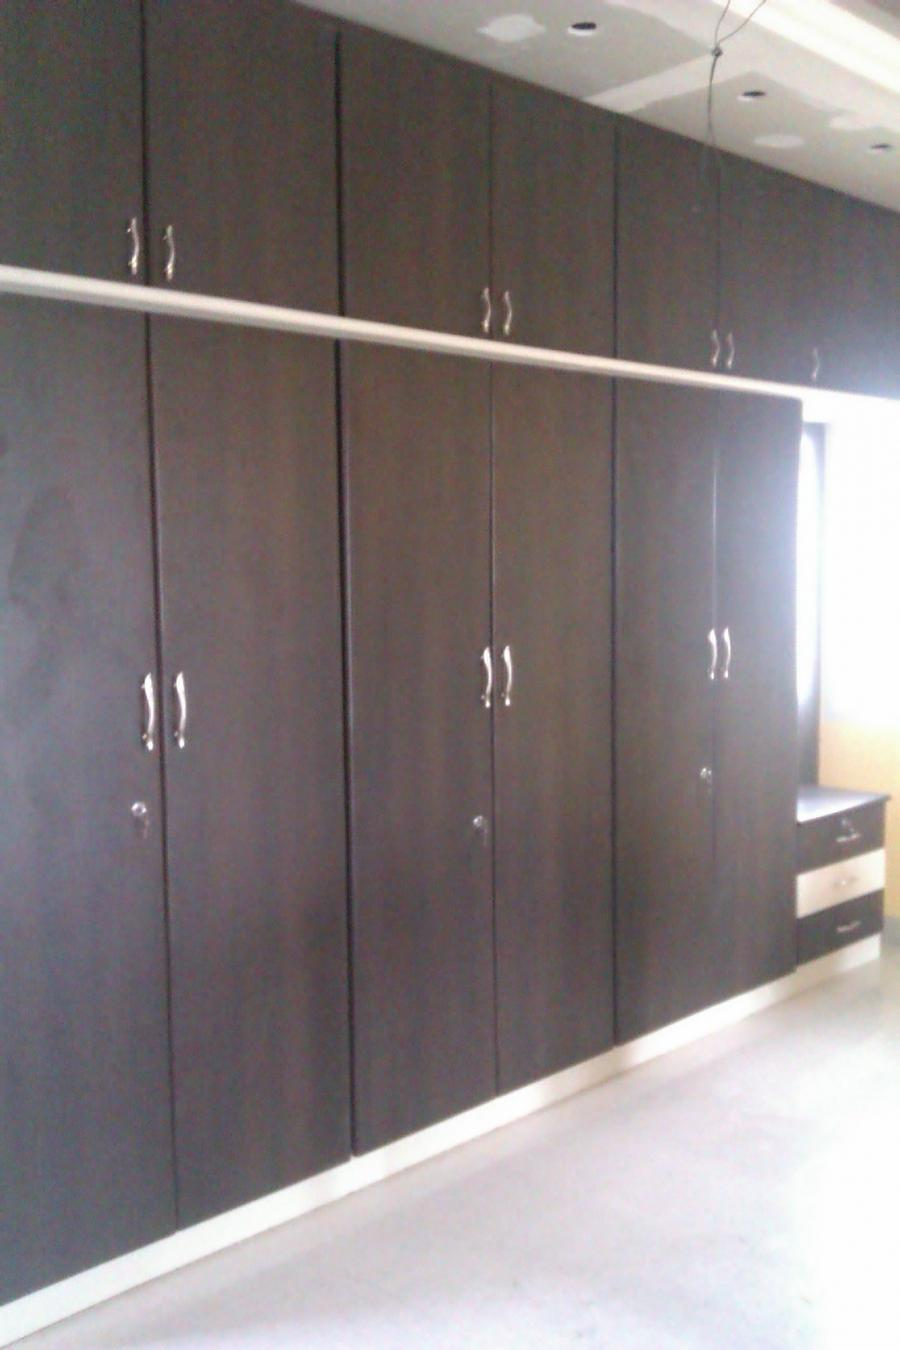 Wardrobe designs photos bangalore for Kitchen sunmica design